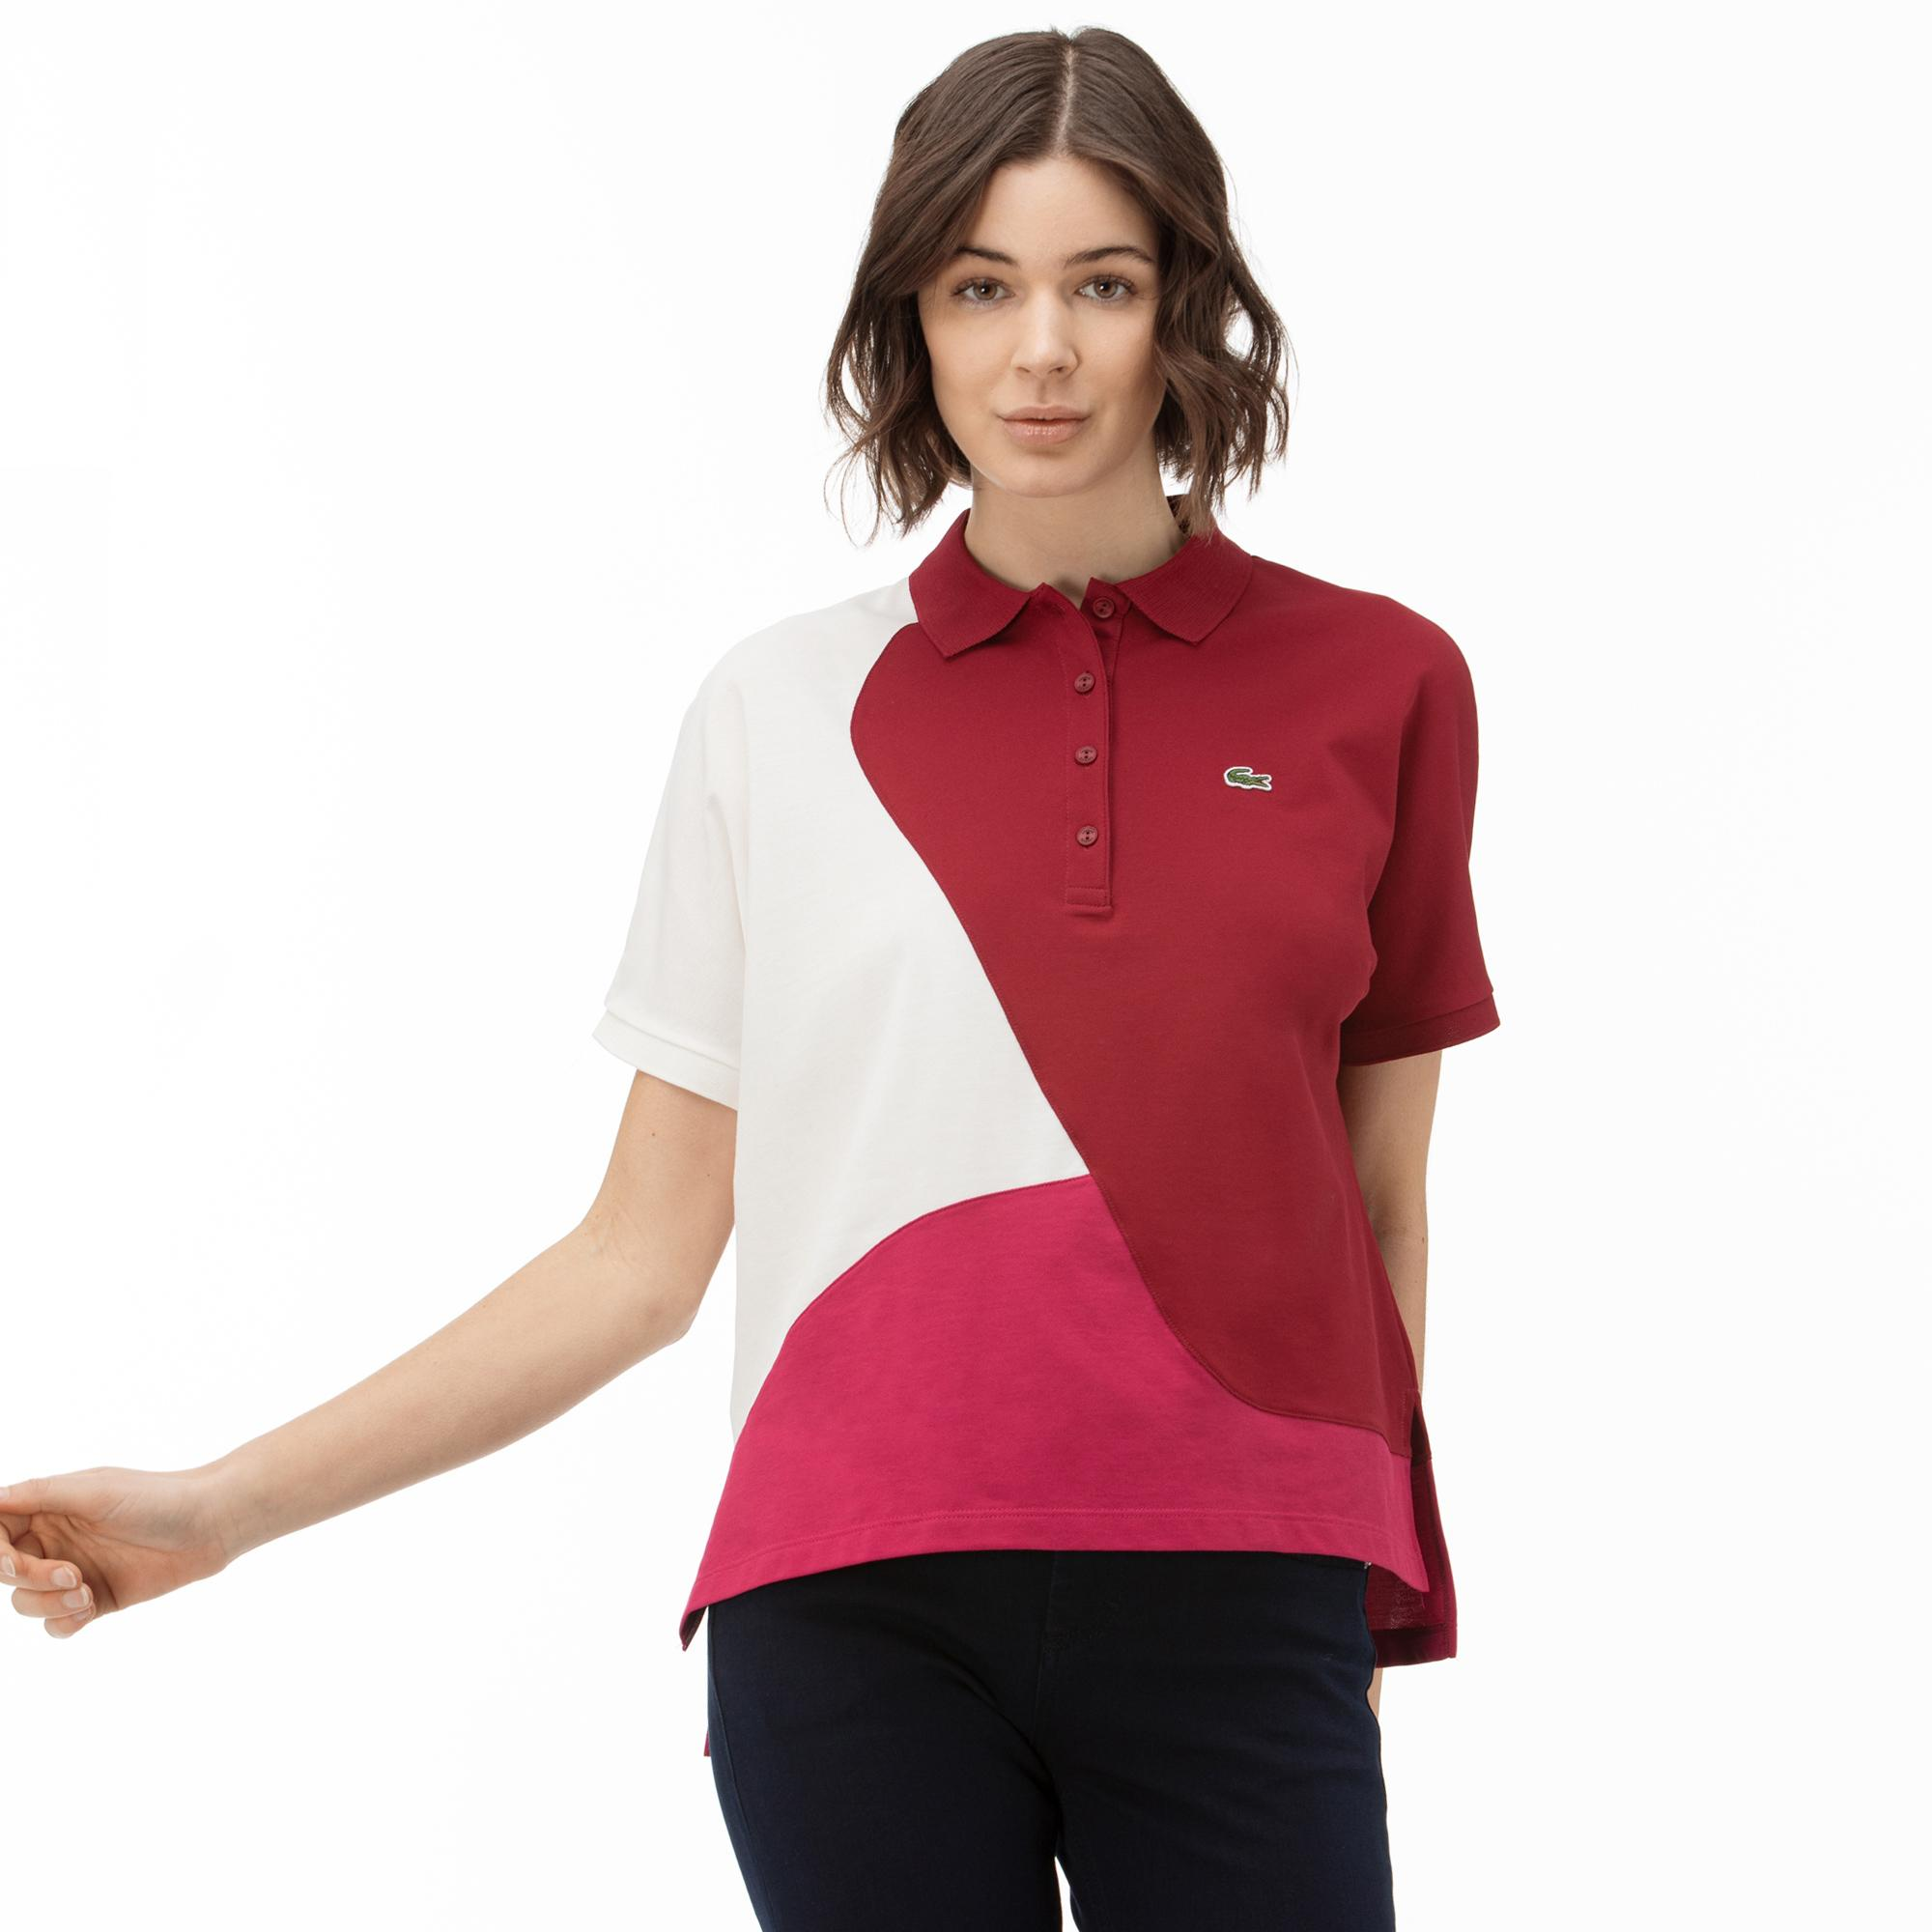 Lacoste Women's Colourblock Thermoregulating Piqué Polo